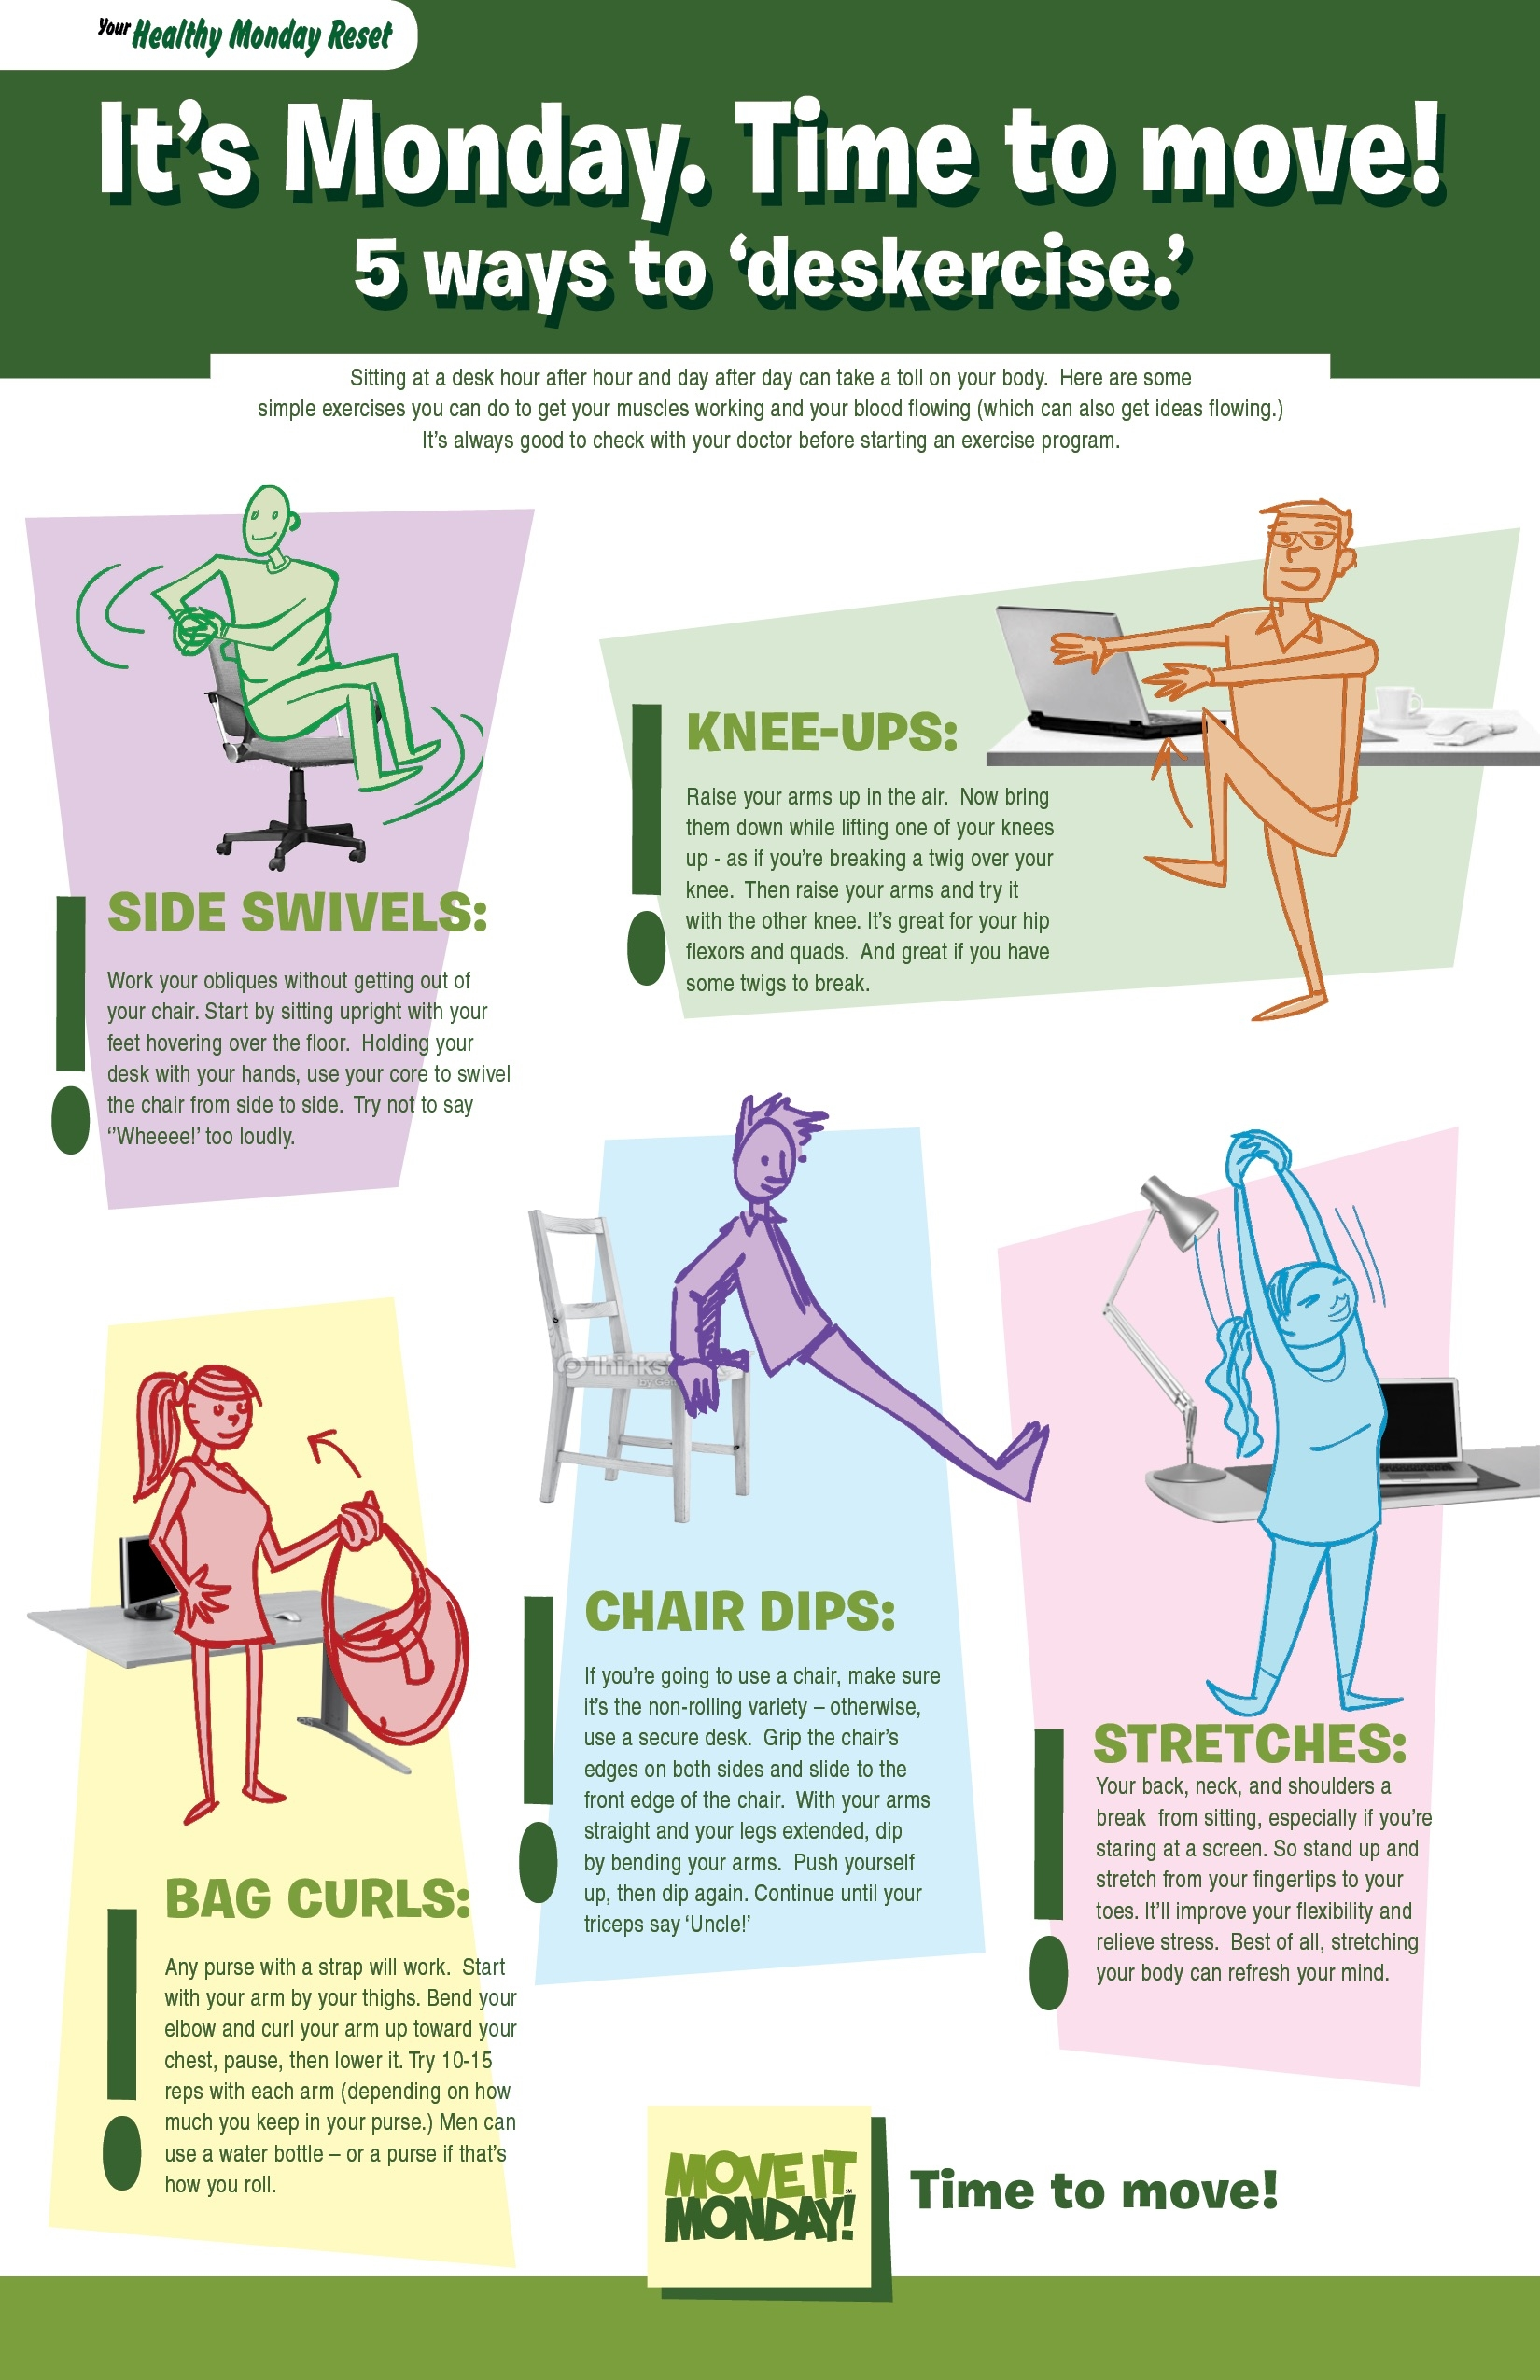 at recovery while desk exercises sitting bicep man exercise category